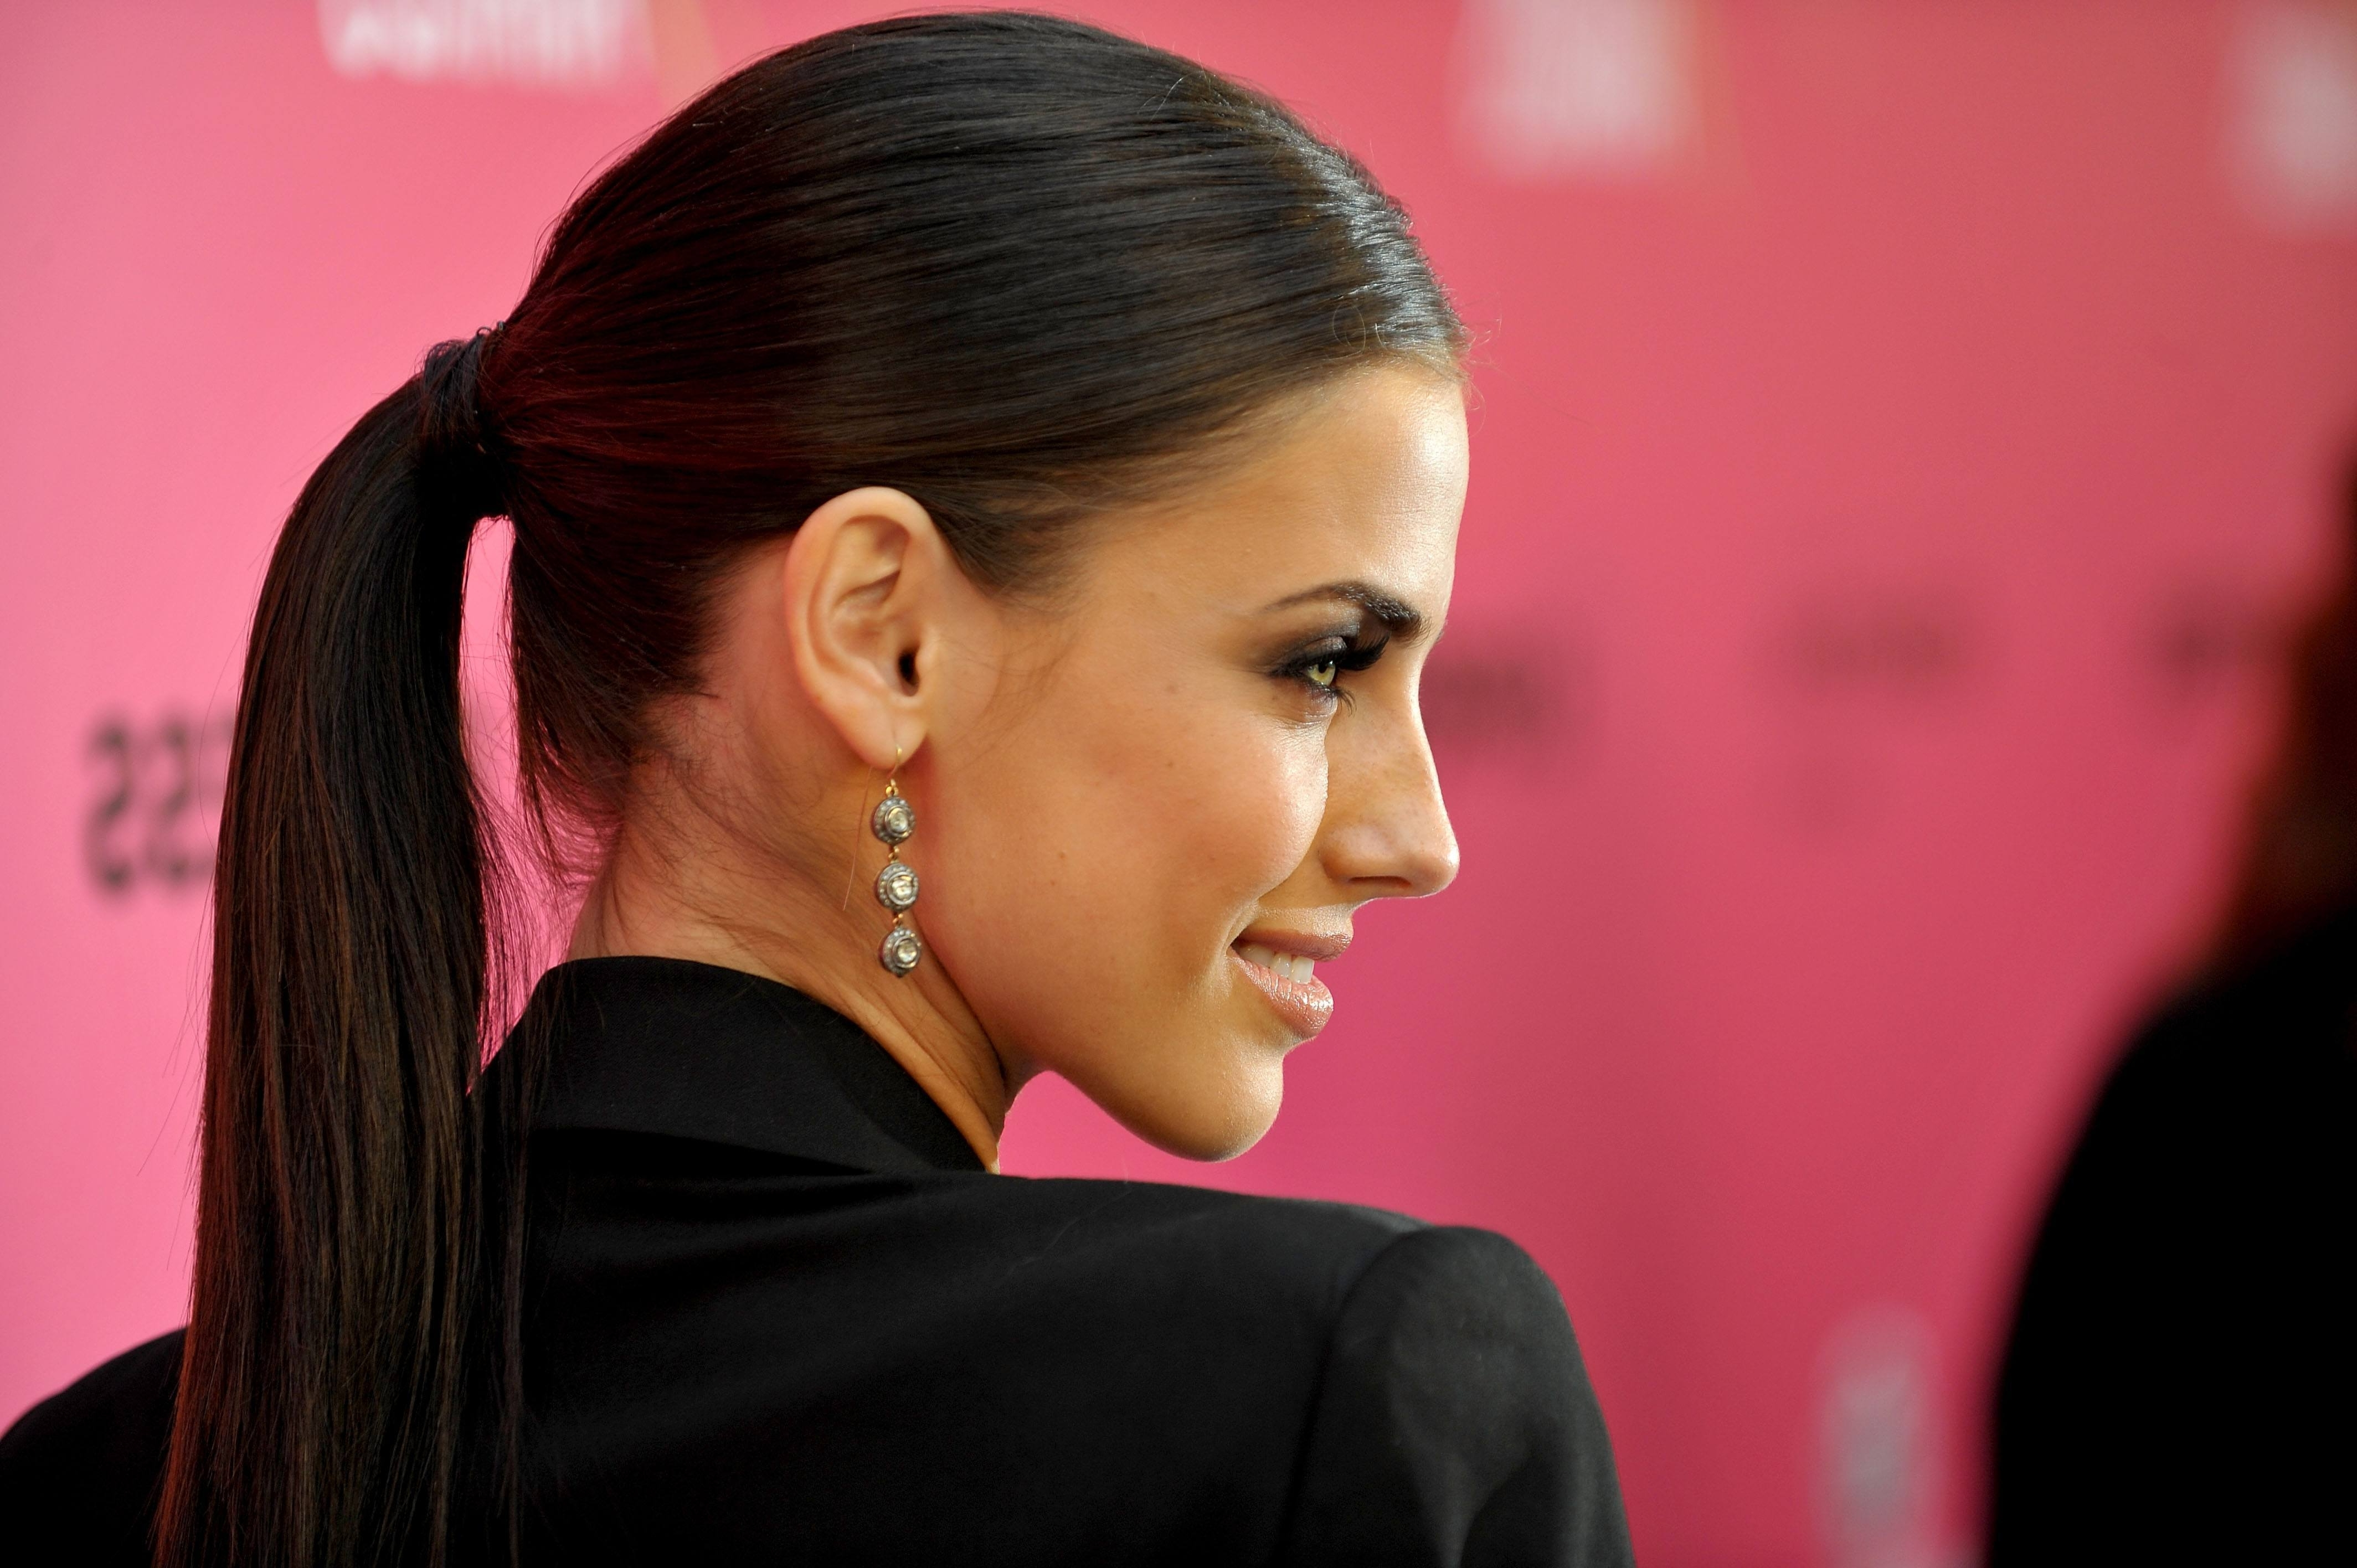 Top 25 Easy And Beautiful Ponytail Hairstyles Throughout Well Liked Super Sleek Ponytail Hairstyles (View 8 of 20)